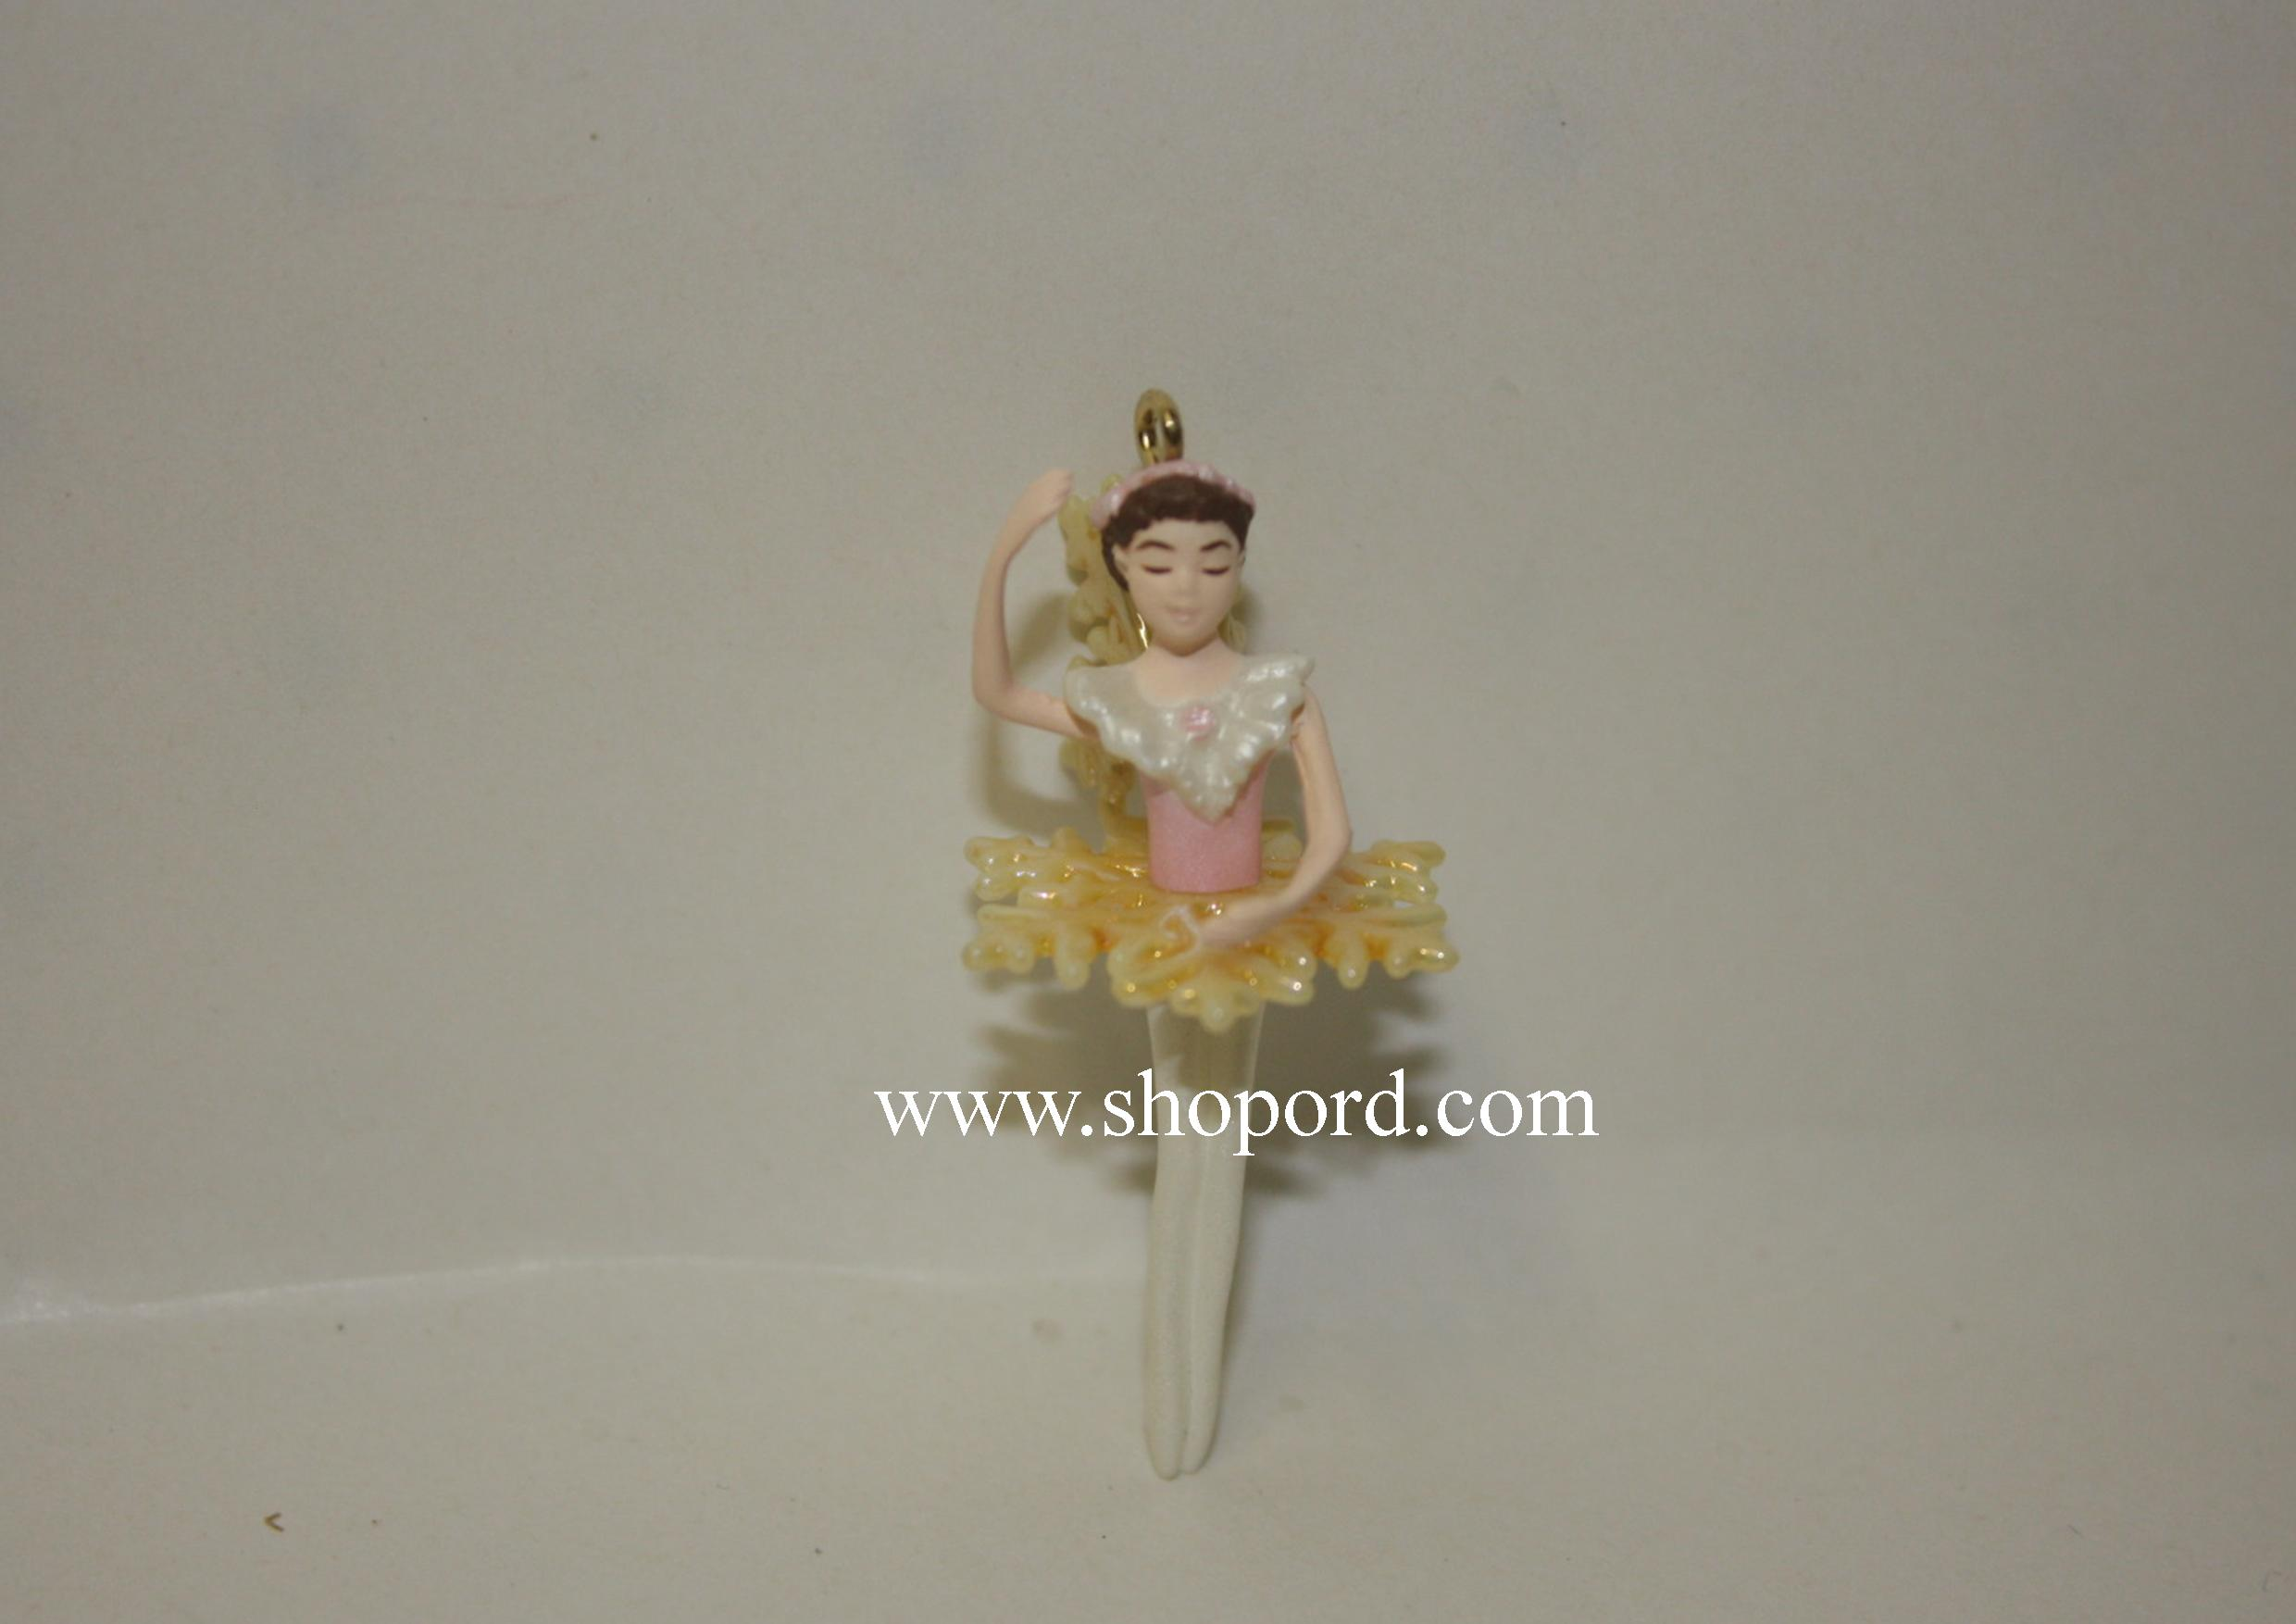 Hallmark 1999 Snowflake Ballet Miniature Ornament 3rd and Final In Series QXM4569